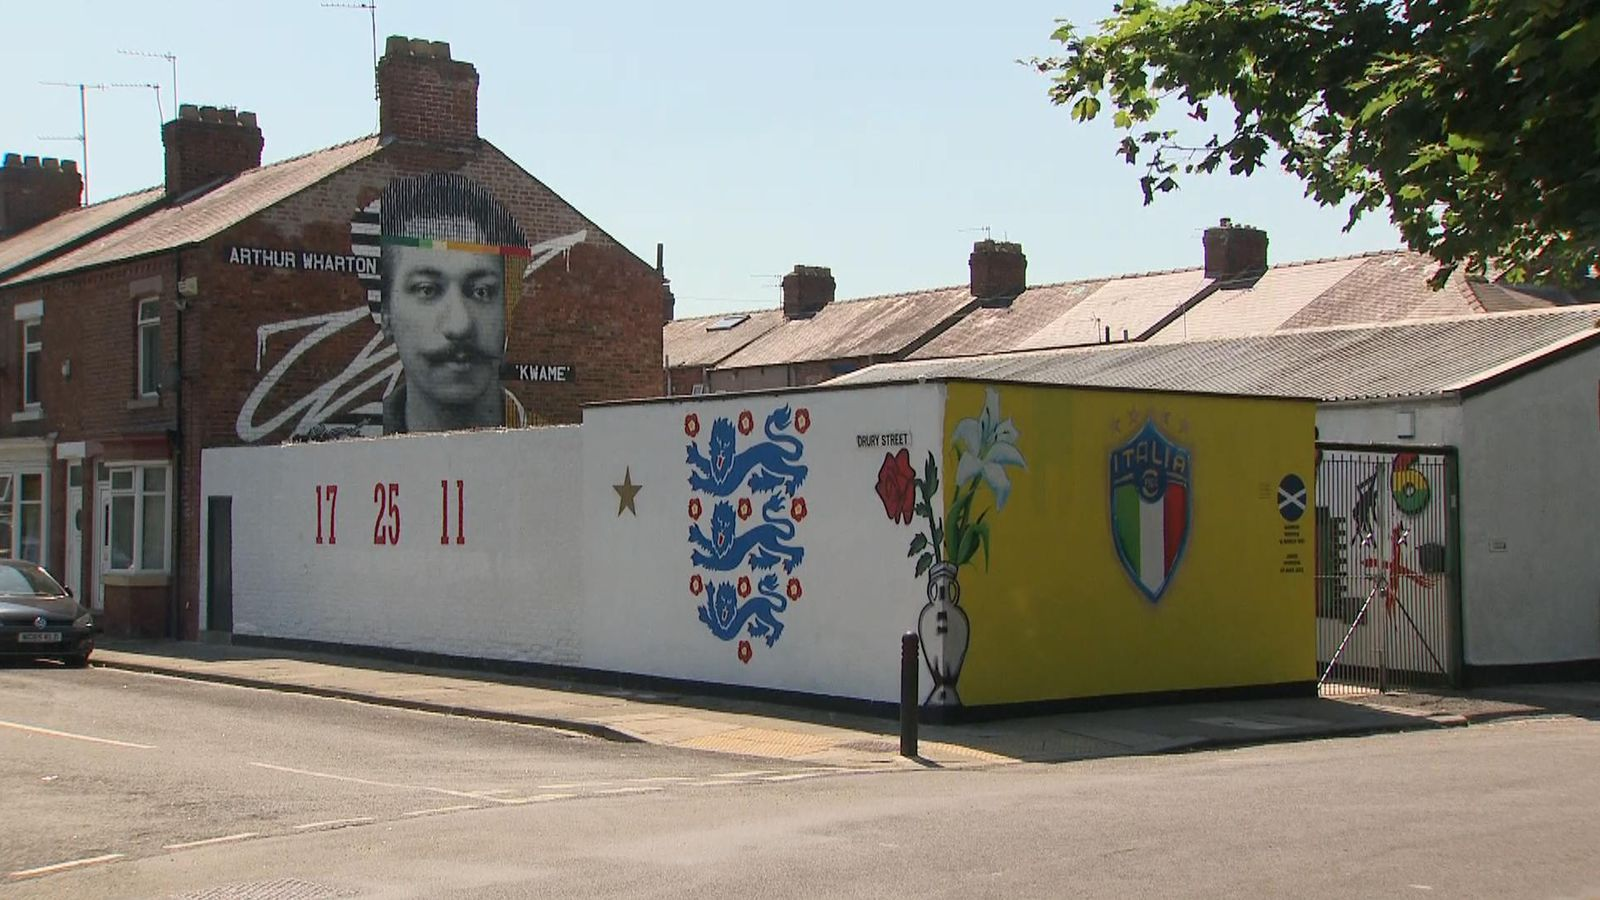 Mural for Saka, Sancho and Rashford defaced with racist message